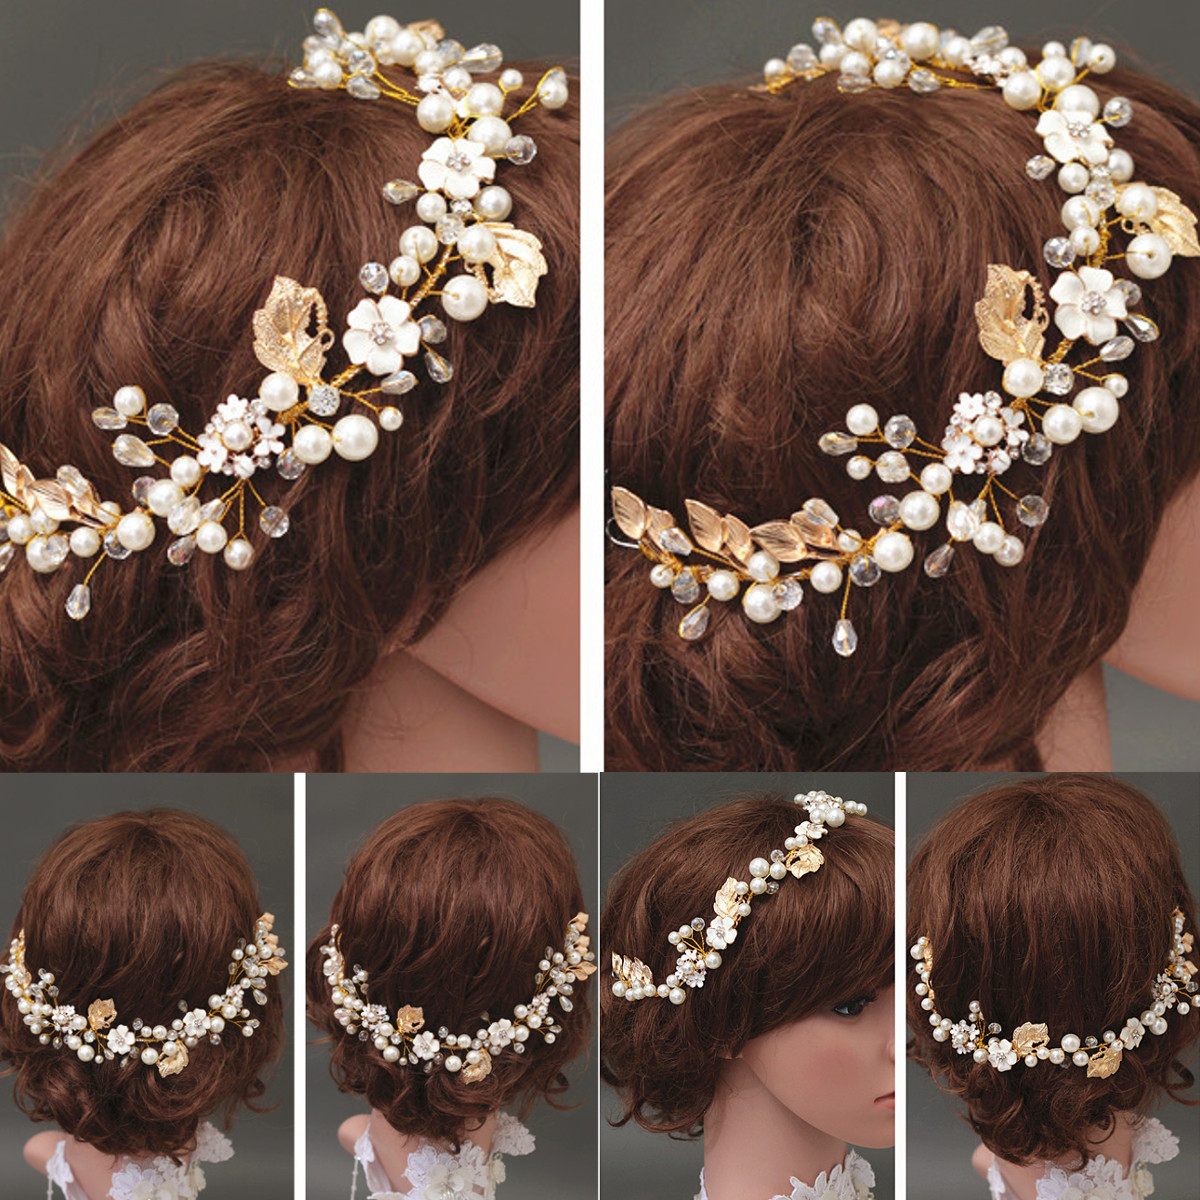 Bride Luxury Crystal Pearl Bead Hair Chain Wedding Bridal Tiara Hair Accessories Headbrand